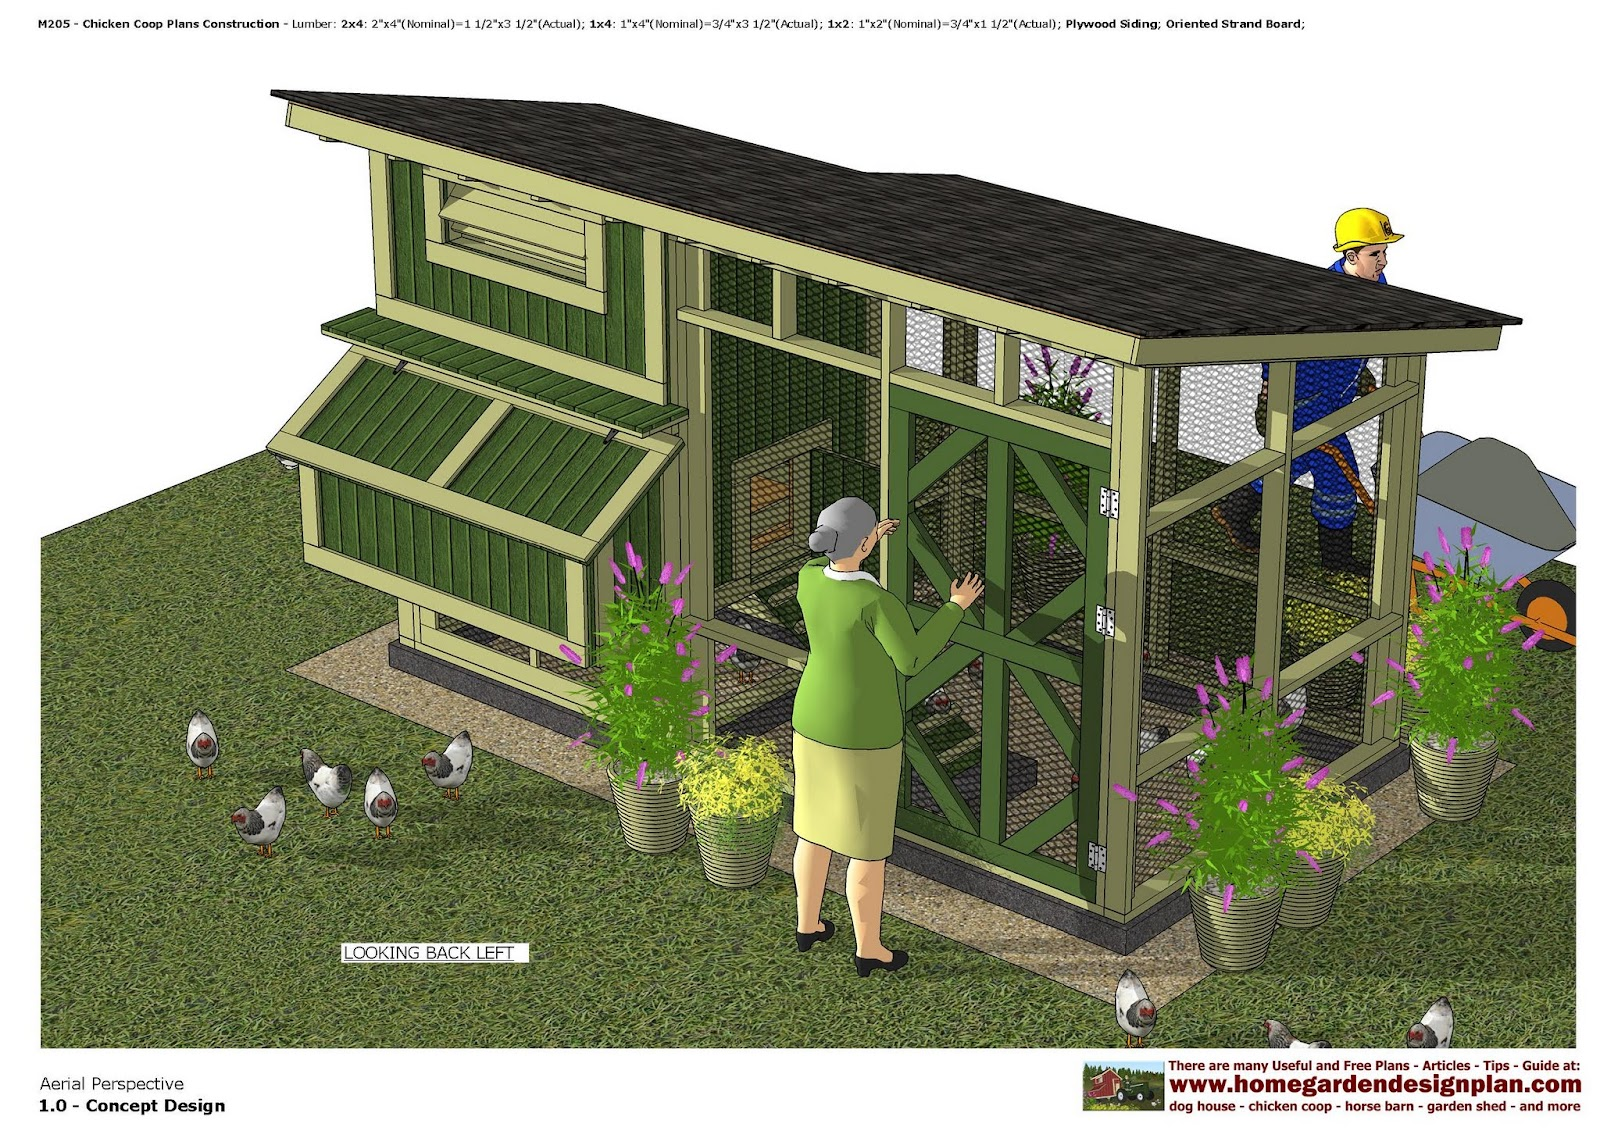 home garden plans m205 chicken coop plans construction. Black Bedroom Furniture Sets. Home Design Ideas